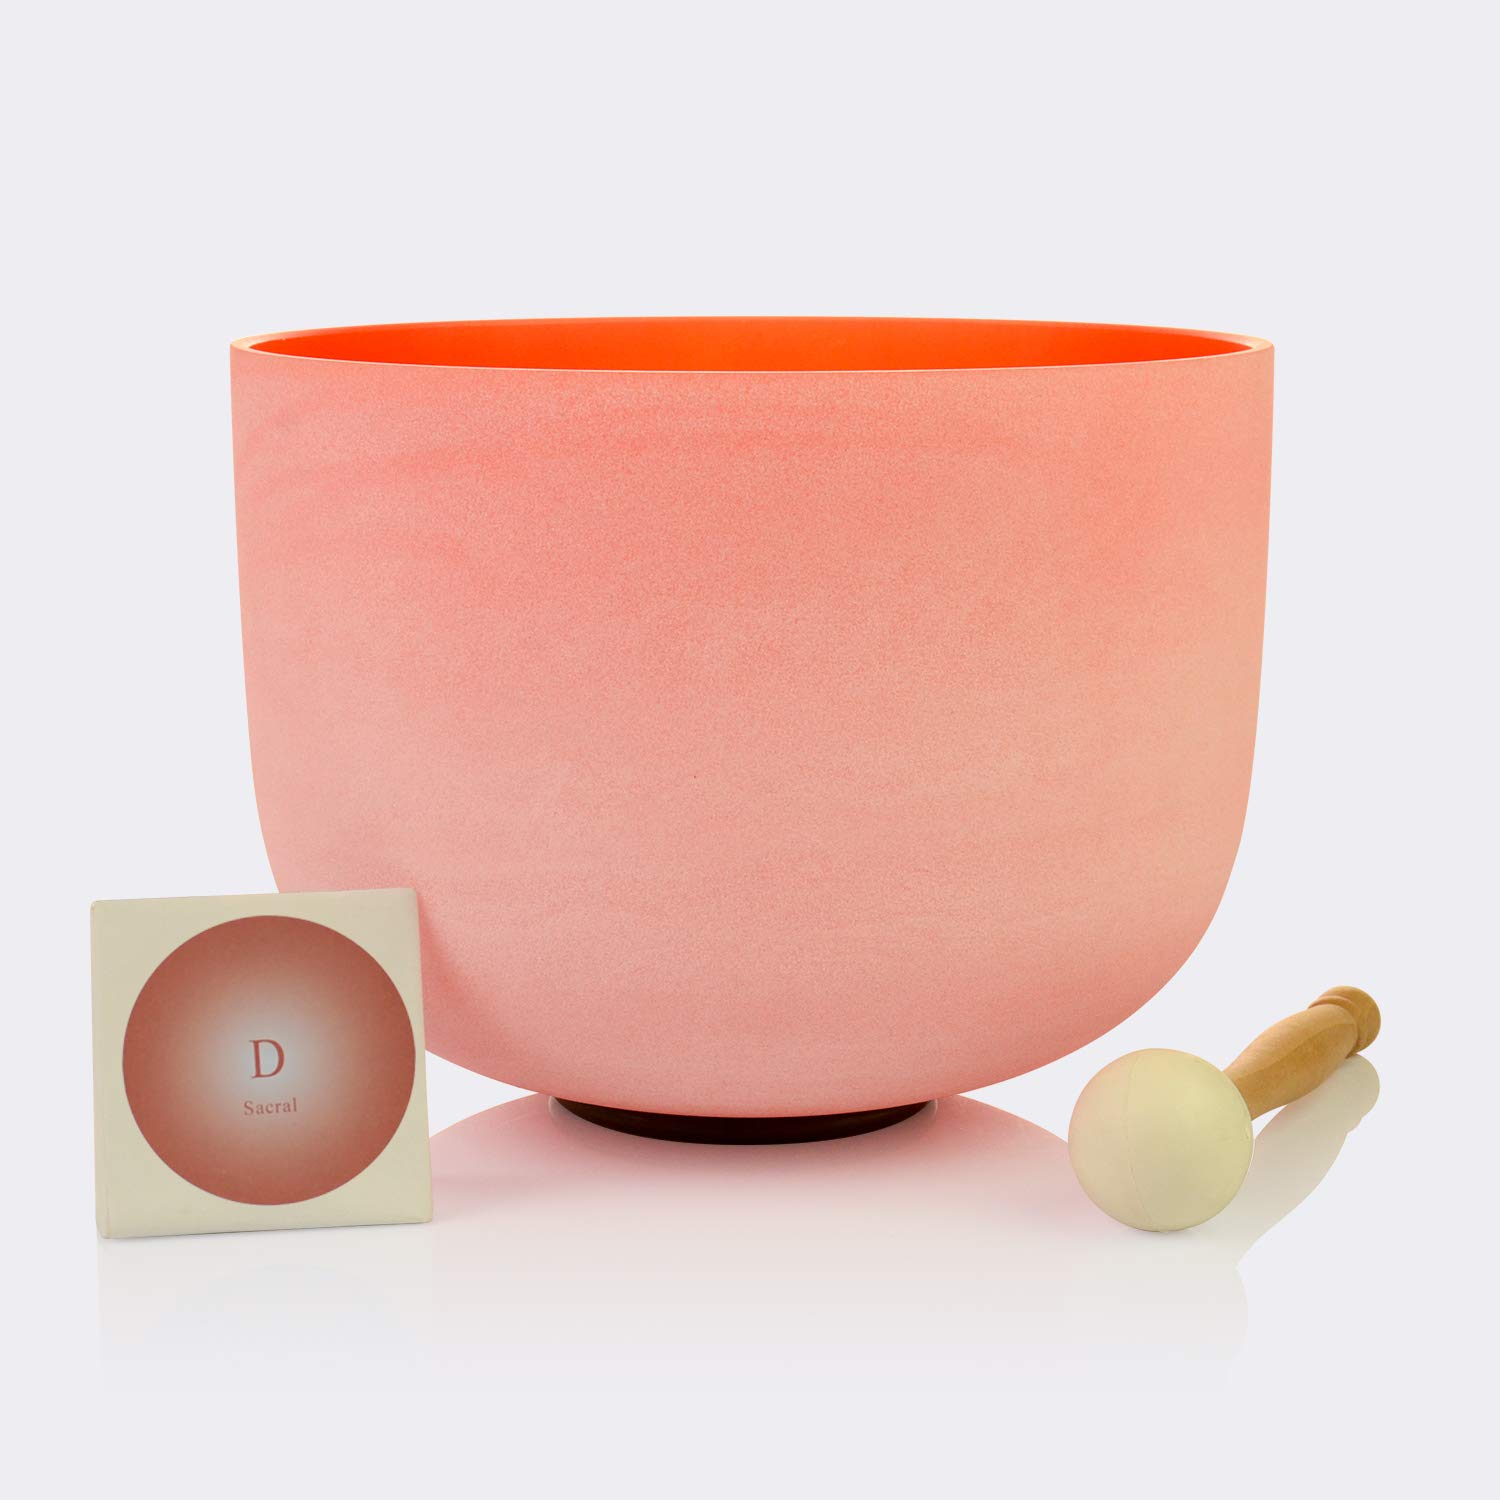 TOPFUND Singing Bowls D Note Crystal Singing Bowl Sacral Chakra Orange Color 12 inch (O ring and Rubber Mallet Included)